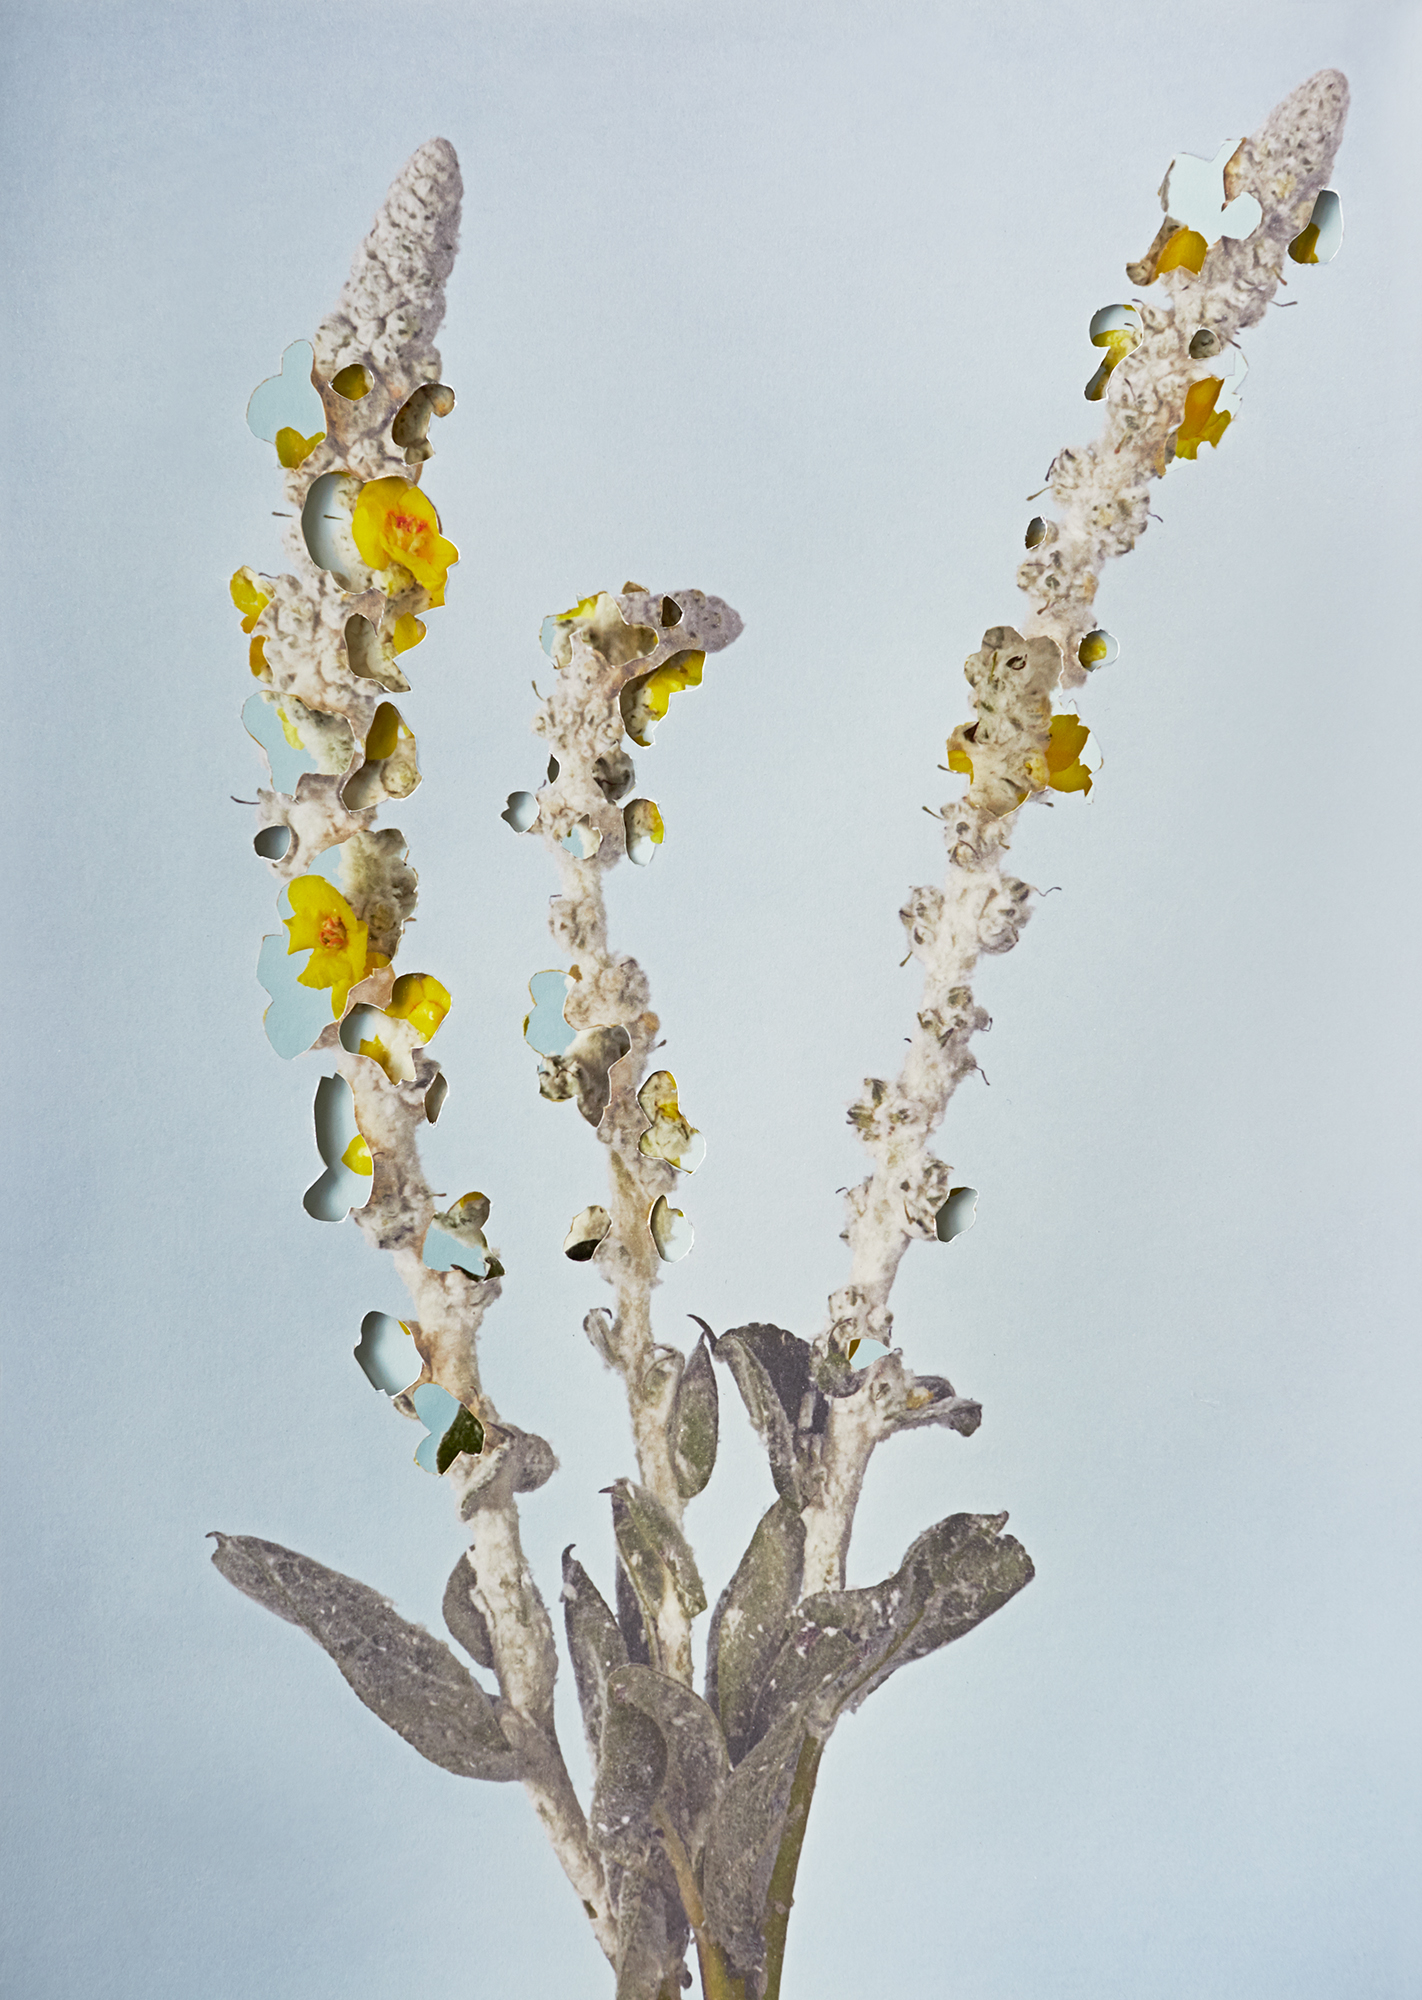 Alma Haser,  Verbascum , 2018  Layered and cut digital pigment prints (2 layers), 47 x 35 cm total (approx. 18.5 x 13.75 in), edition of 7   Inquire